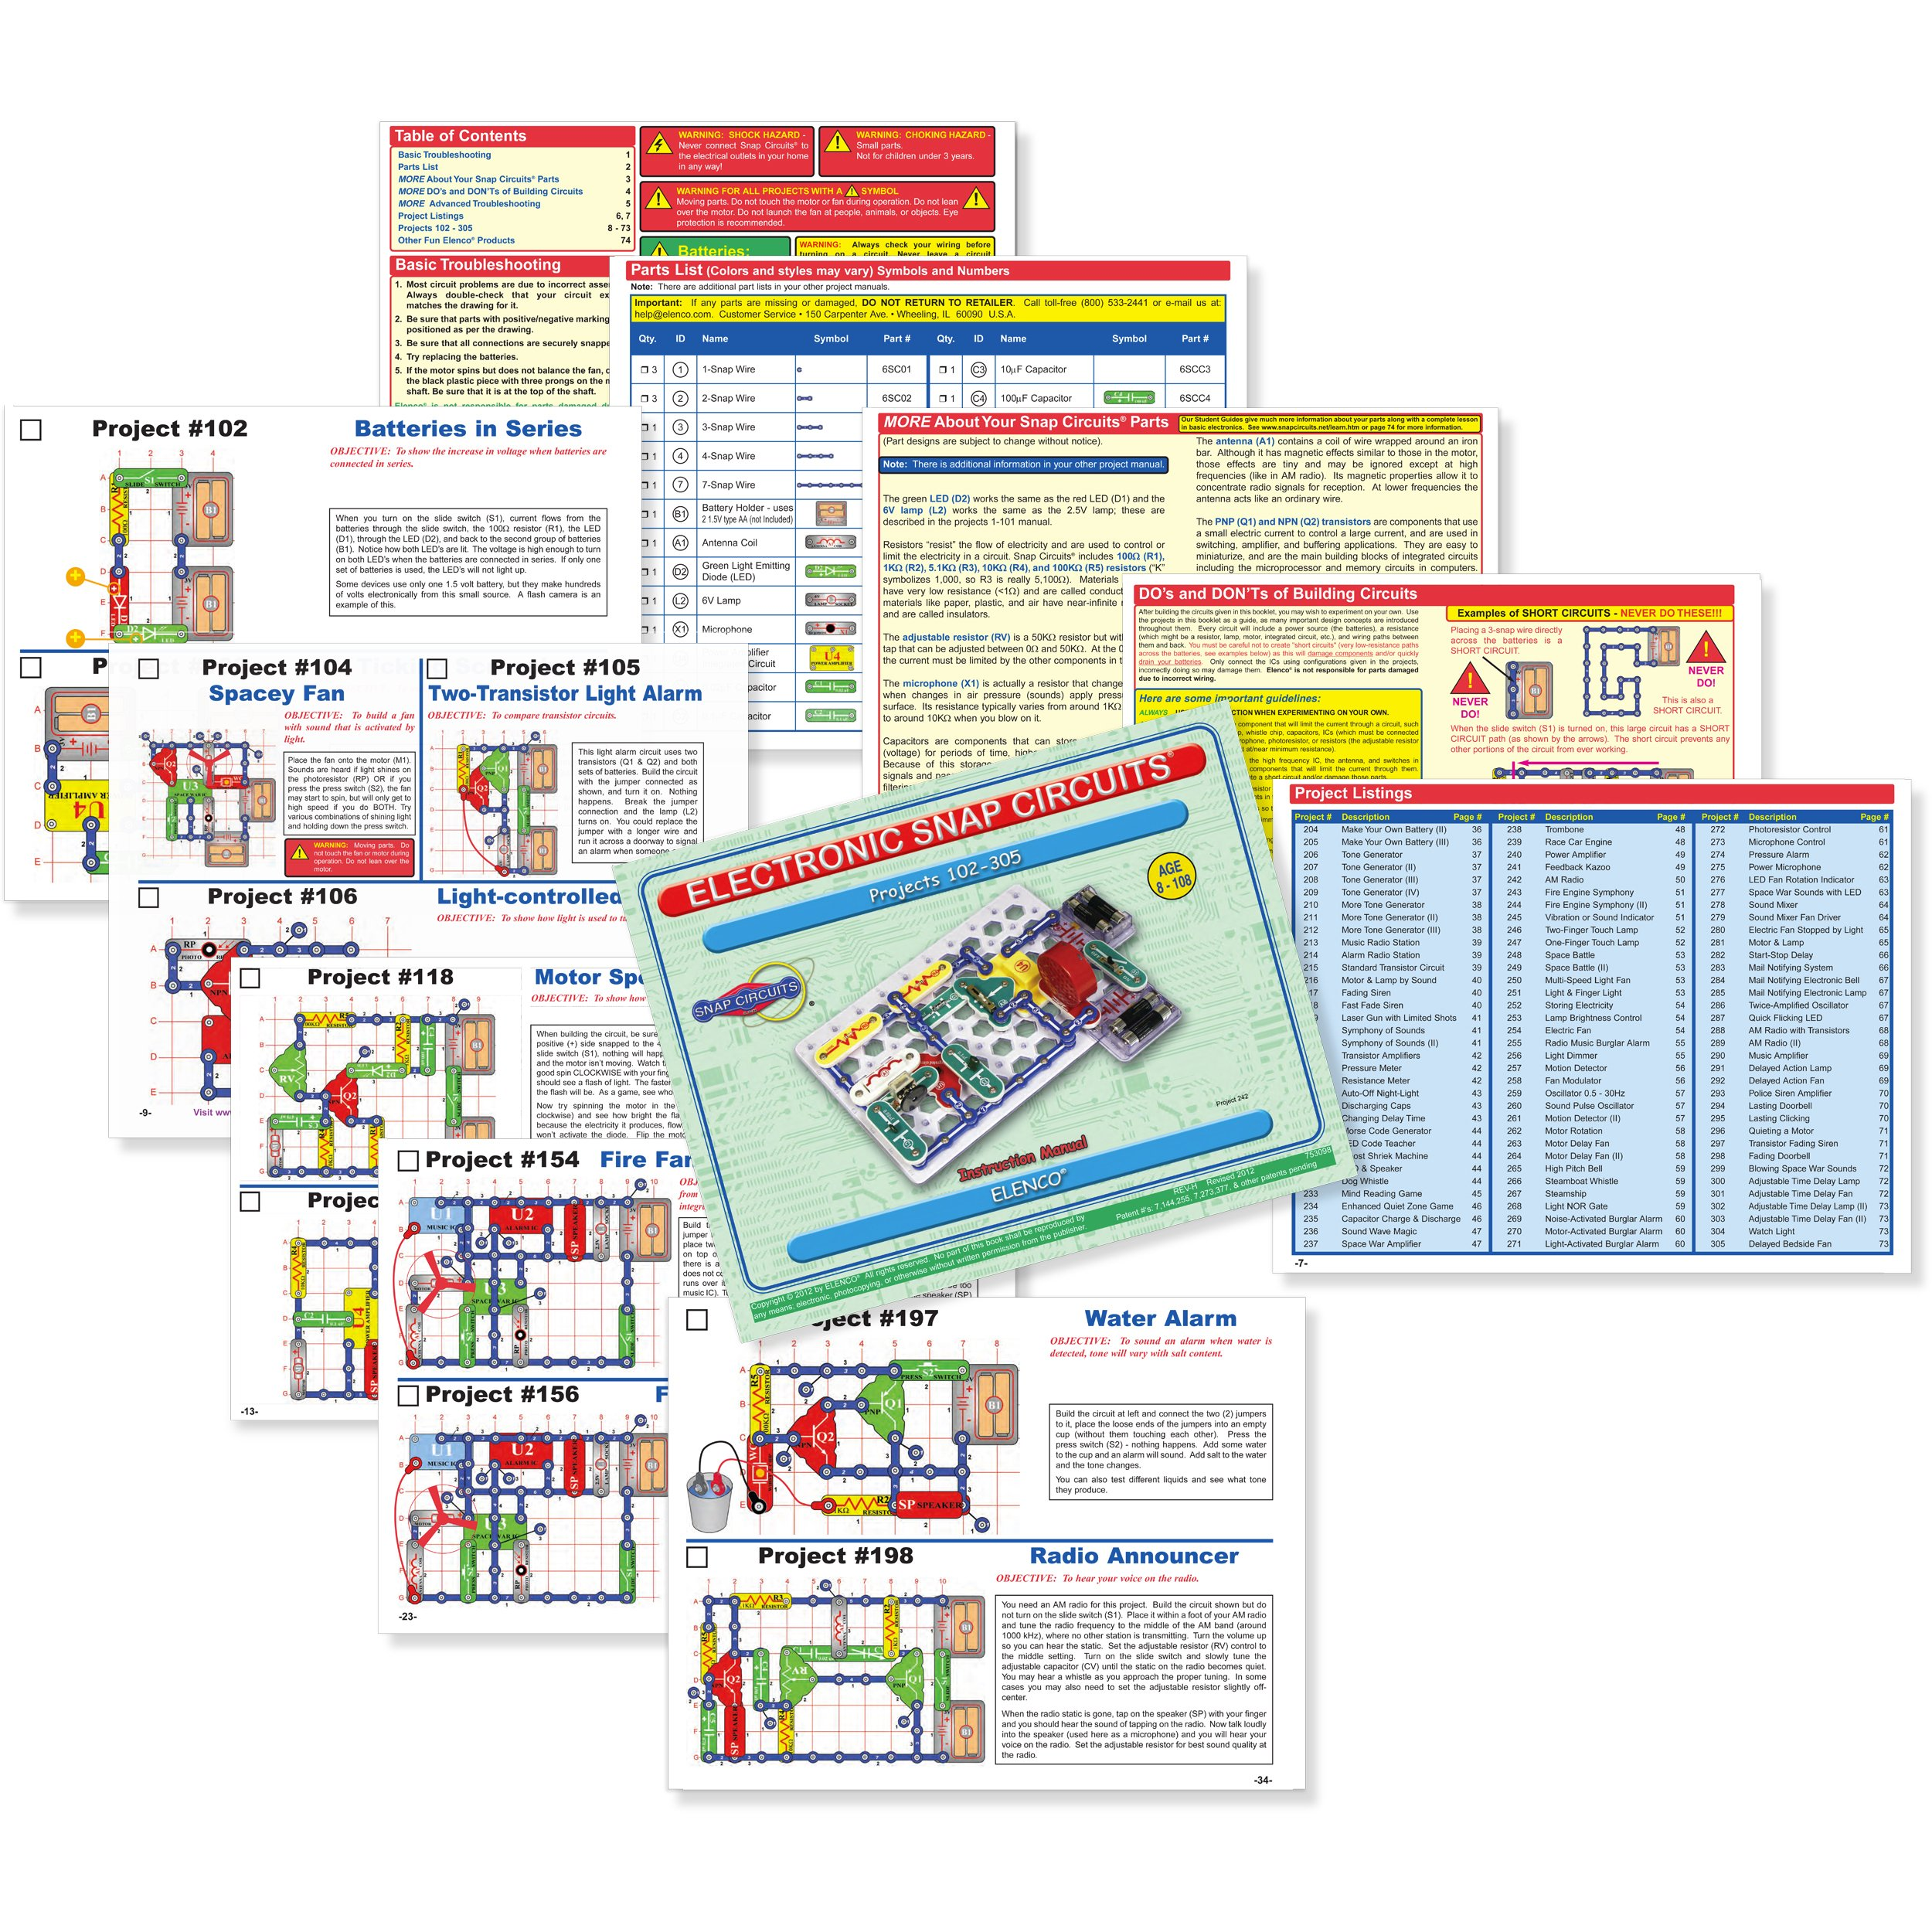 Snap Circuits Classic SC-300 Electronics Exploration Kit | Over 300 STEM Projects | 4-Color Project Manual | 60 Snap Modules | Unlimited Fun by Snap Circuits (Image #6)